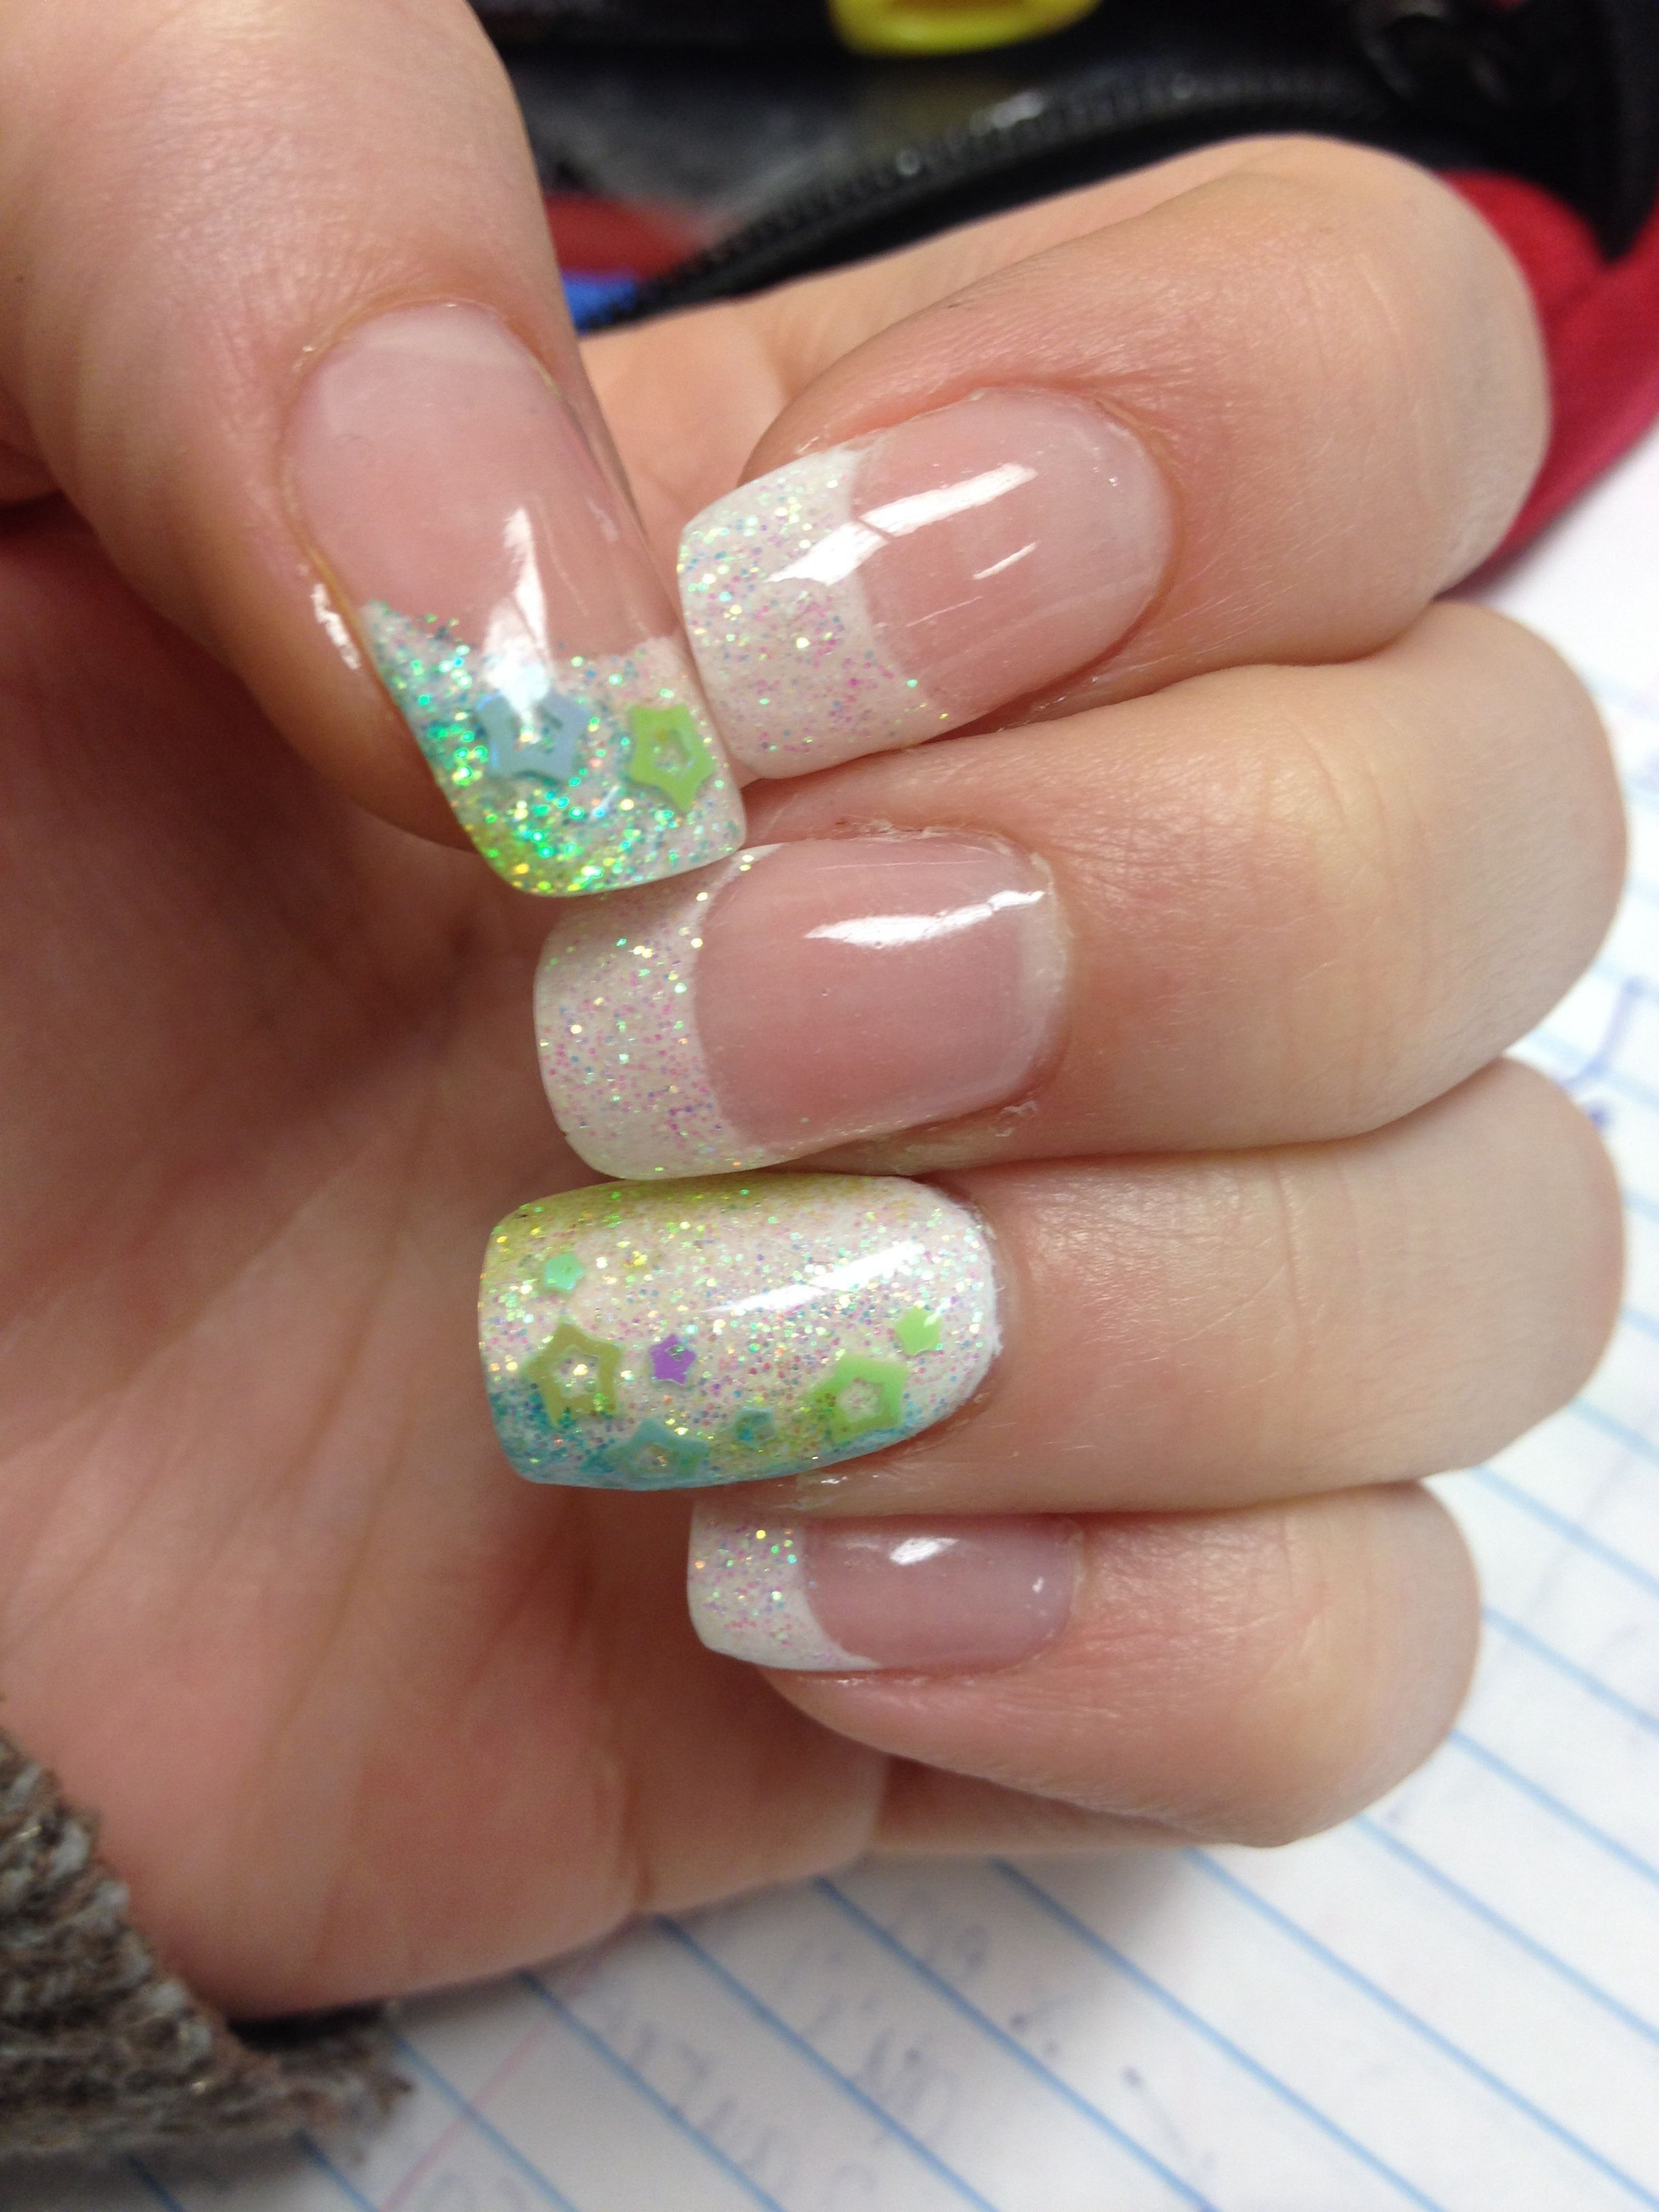 Luxury Nail Gel Polish Style Nail Art Courses Nail Extensions Acrylic Nails Now